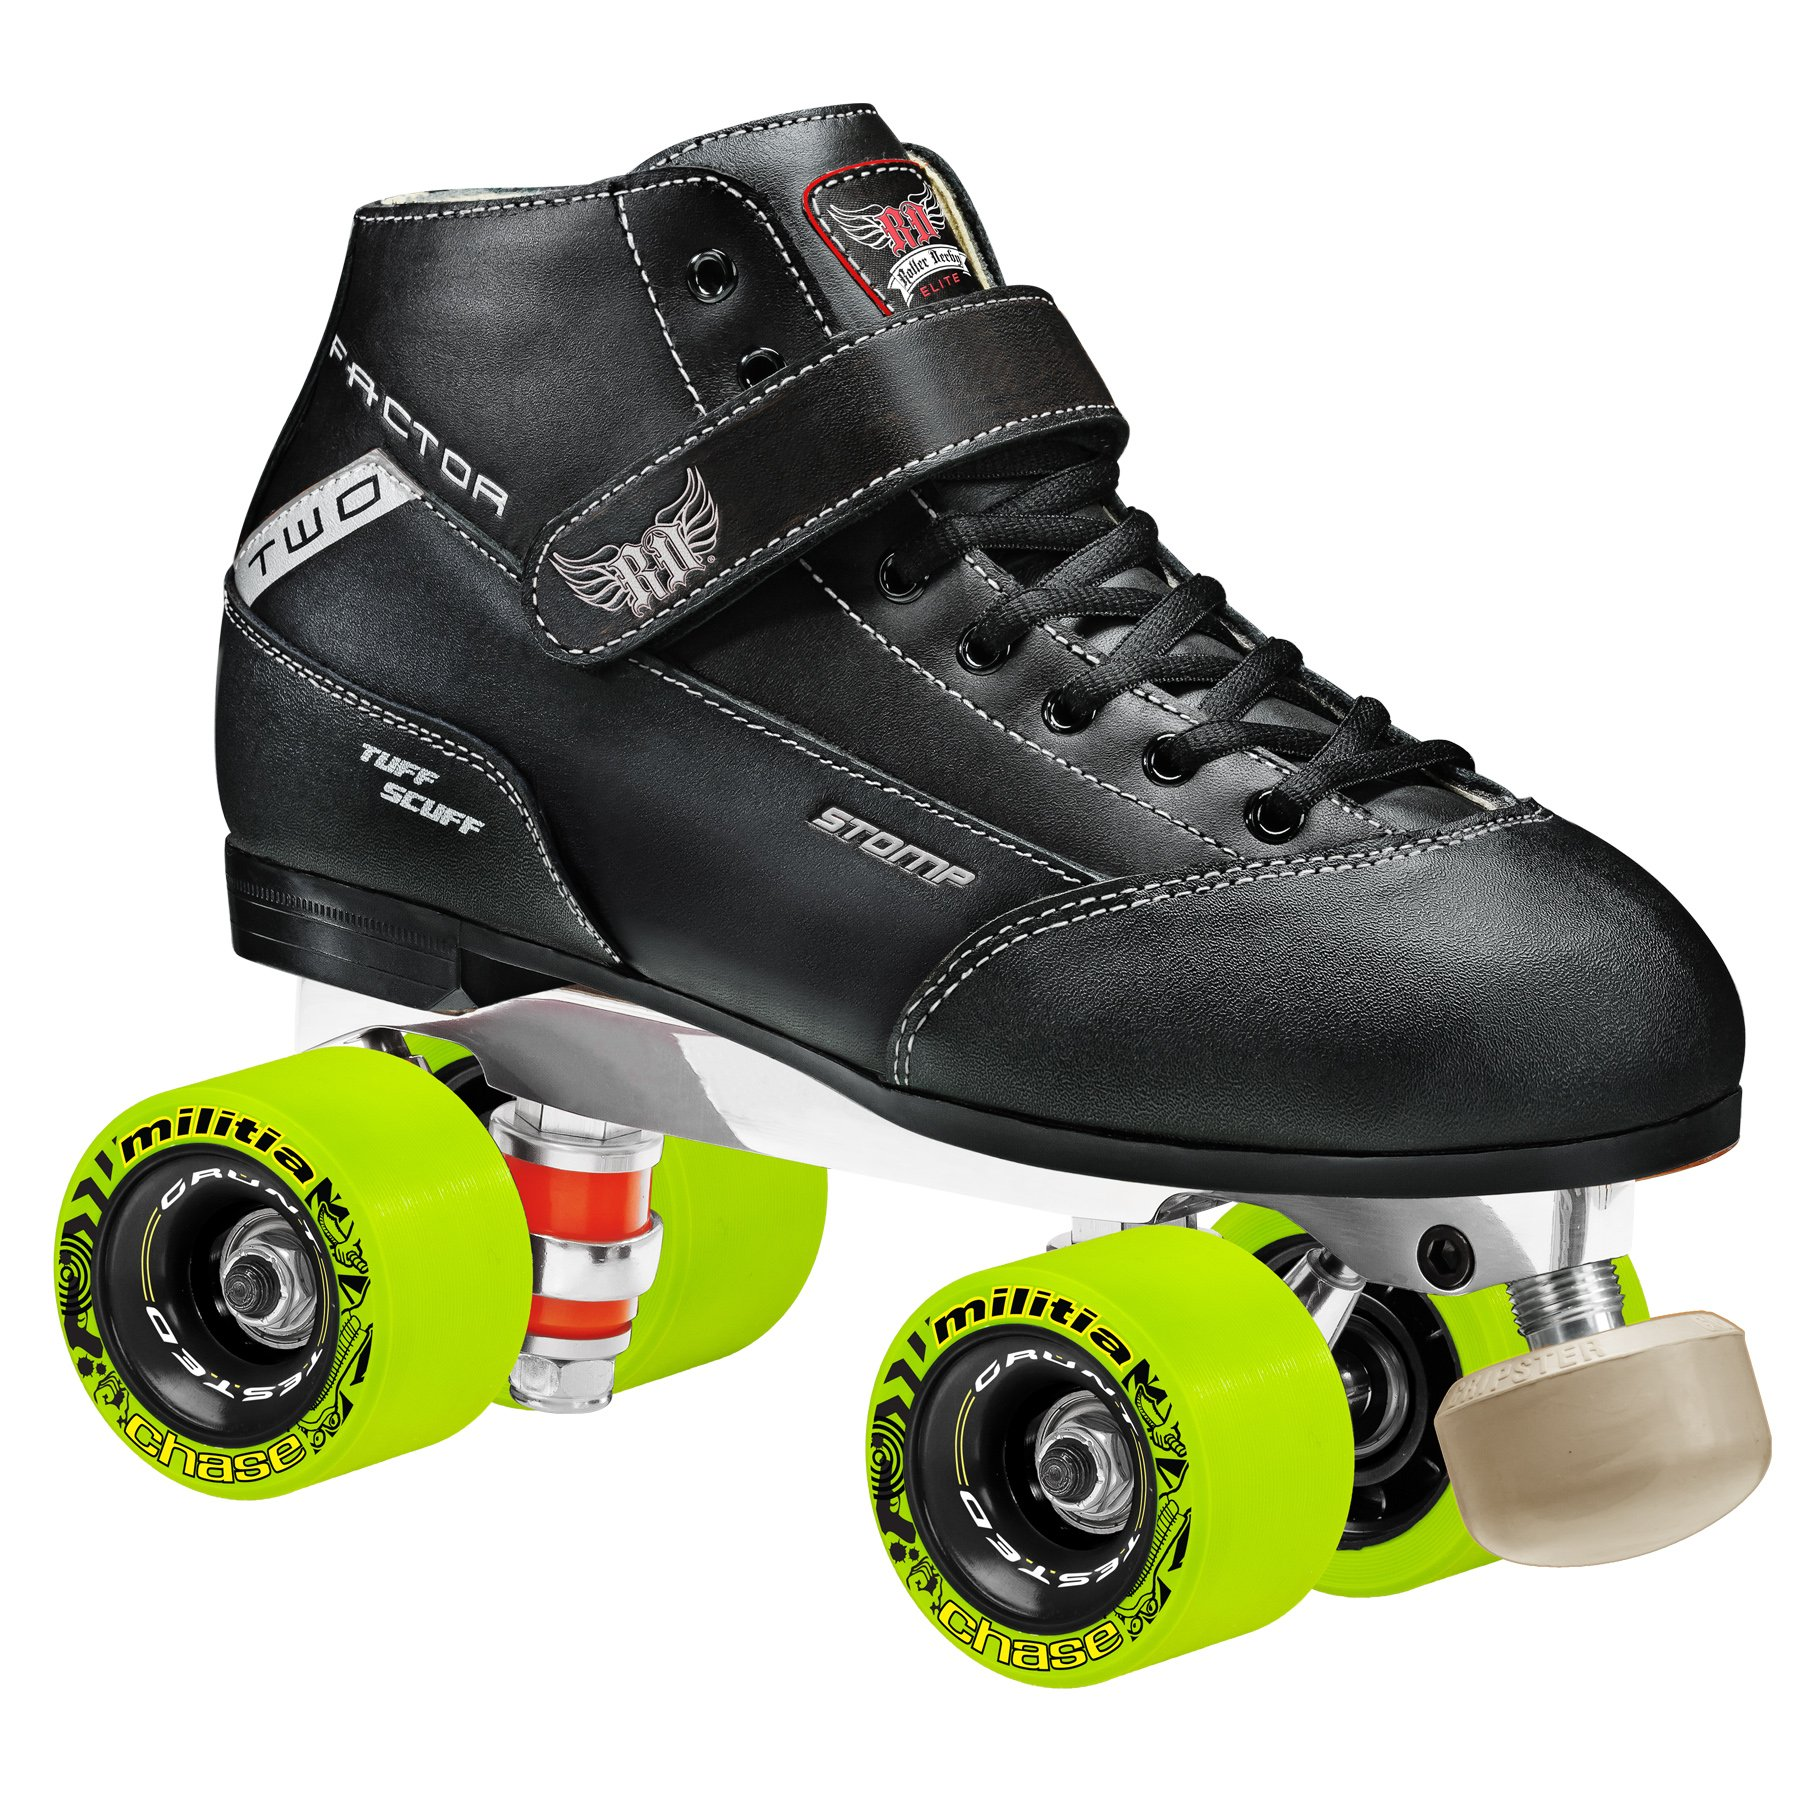 Stomp Factor-2 Derby Skates Size 05 by Roller Derby